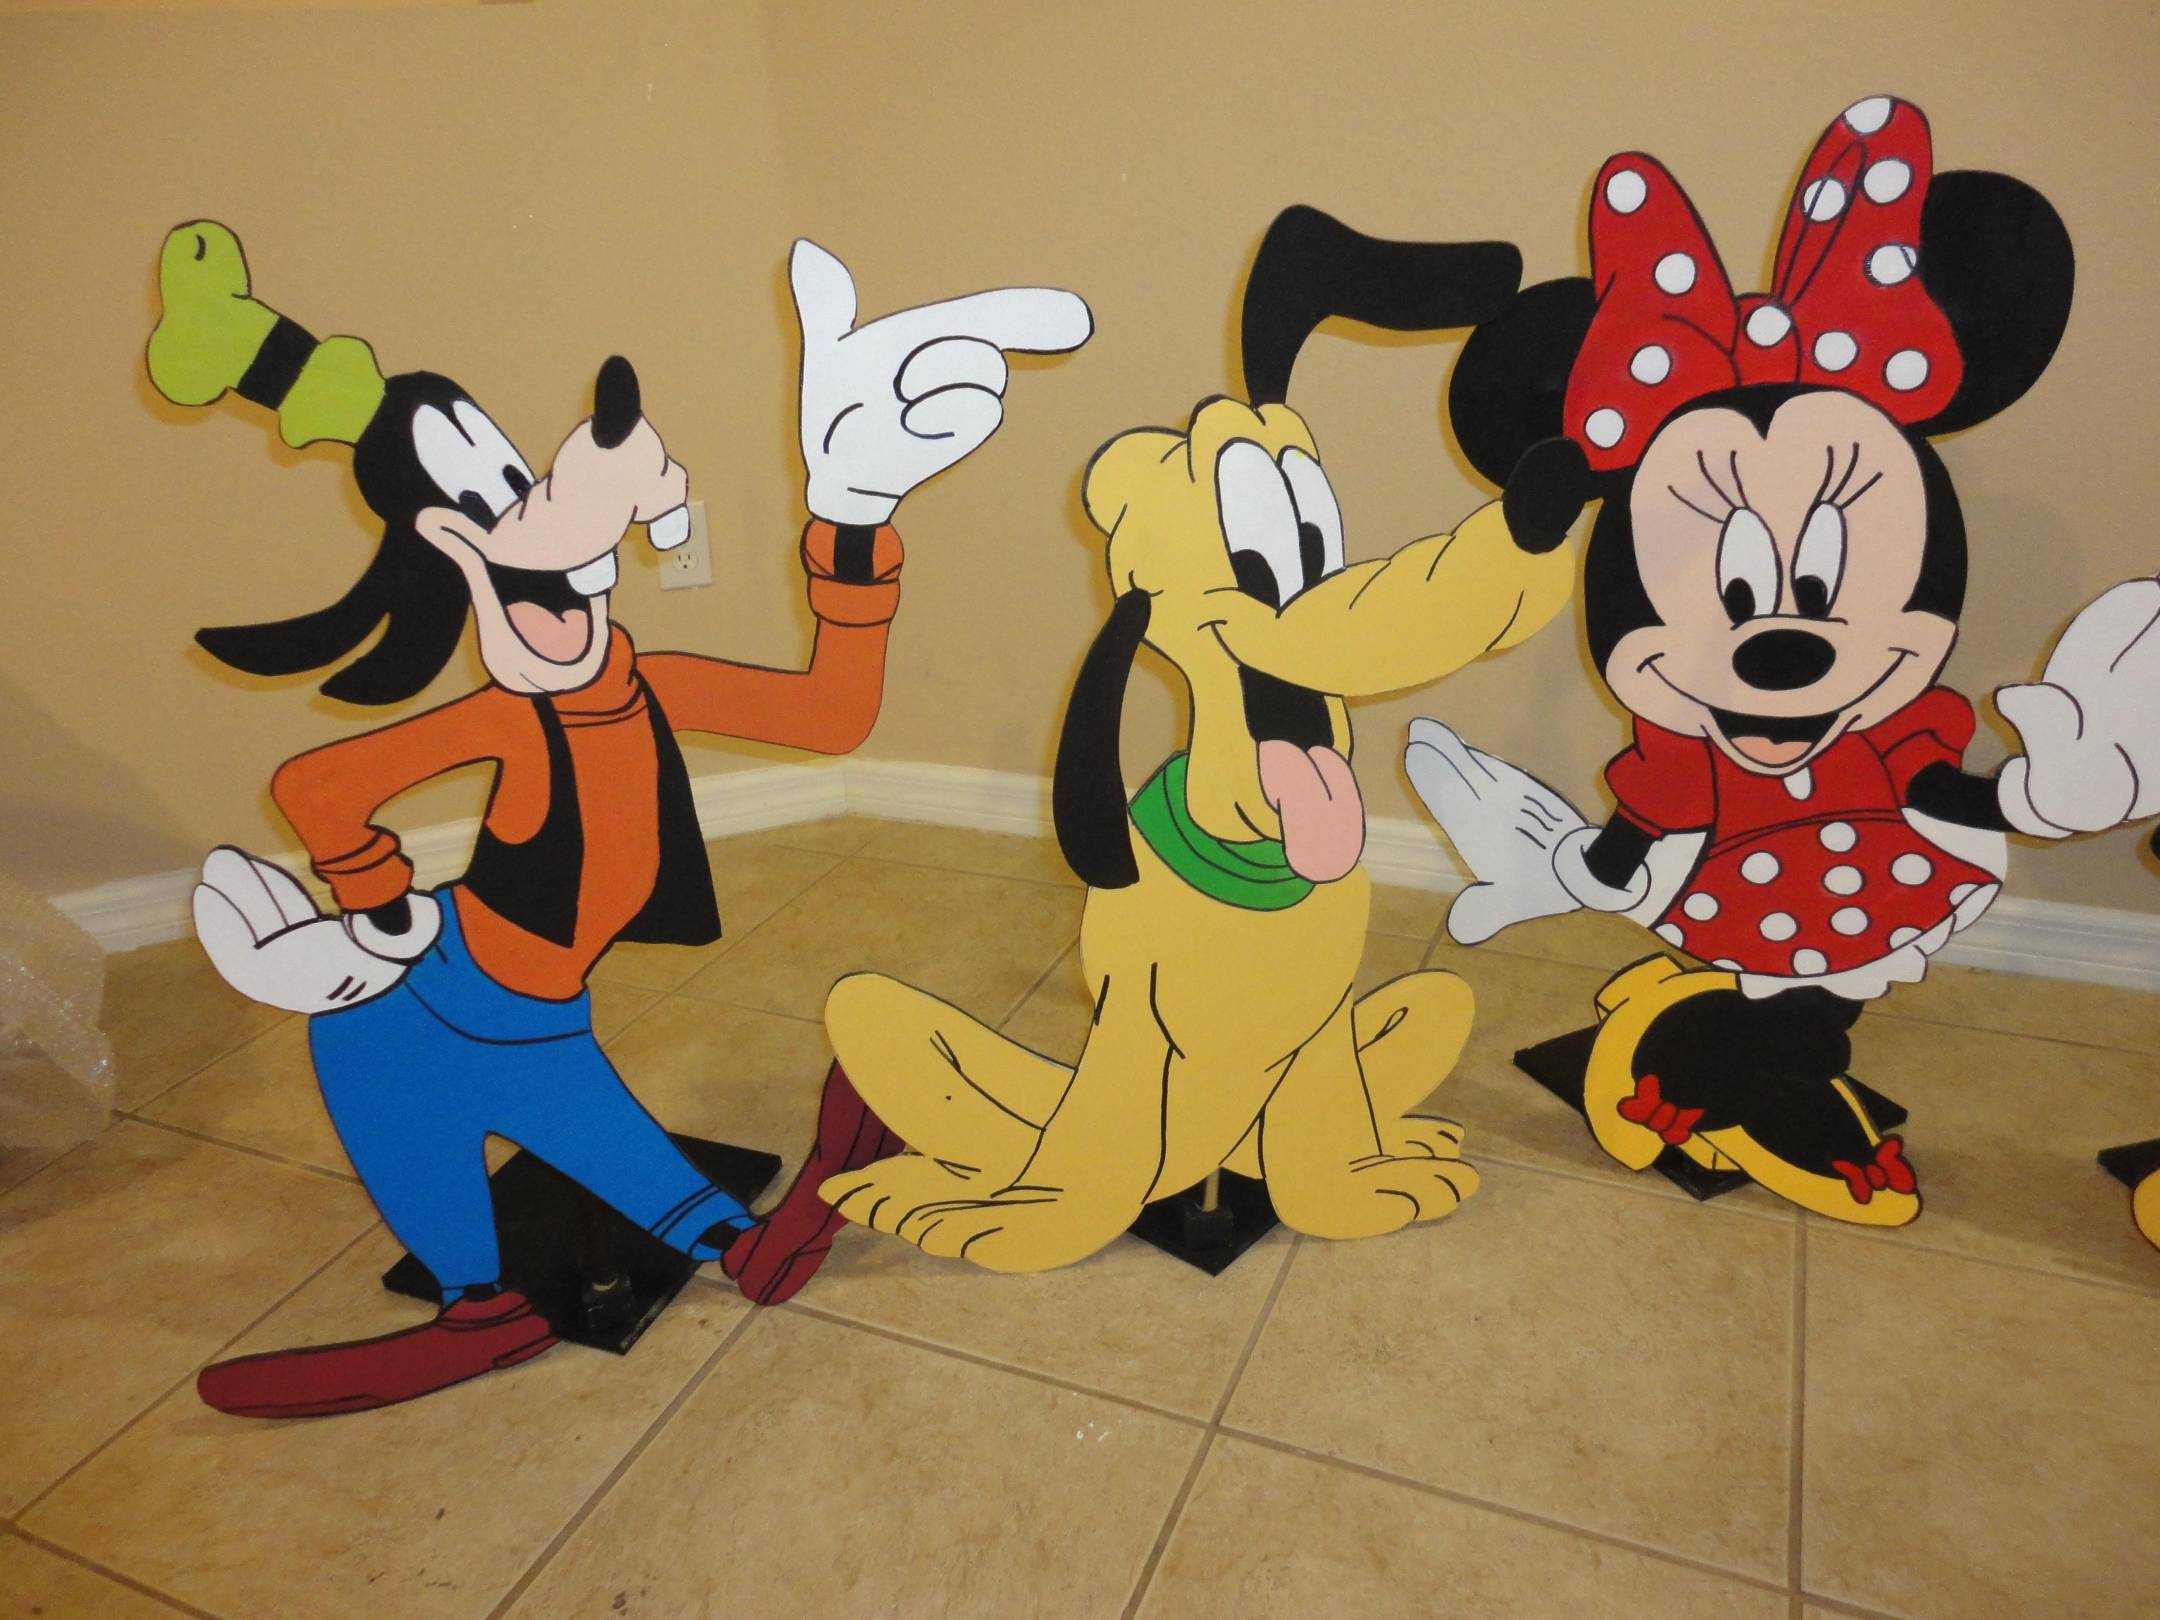 Thumbnail 1 Mickey Mouse Clubhouse